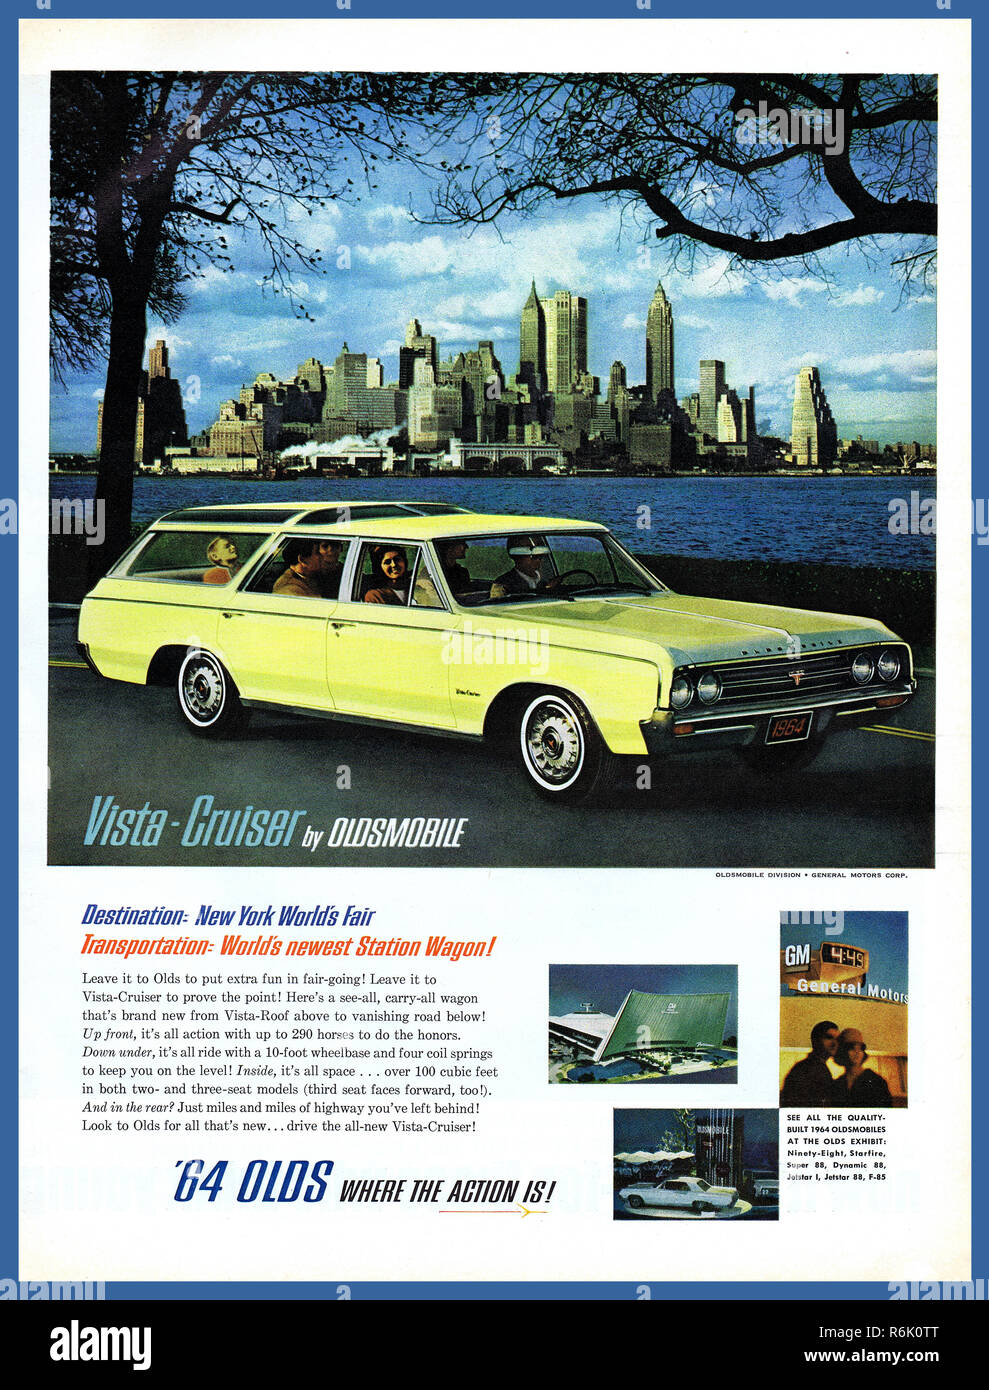 VISTA CRUISER OLDSMOBILE Vintage American Automobile Press Advertisement 1960's coinciding with New York Worlds Fair. New York City Manhattan in background  The Oldsmobile Vista Cruiser 1964 '64 OLDS a station wagon manufactured and marketed by Oldsmobile over three generations from 1964 to 1977. - Stock Image